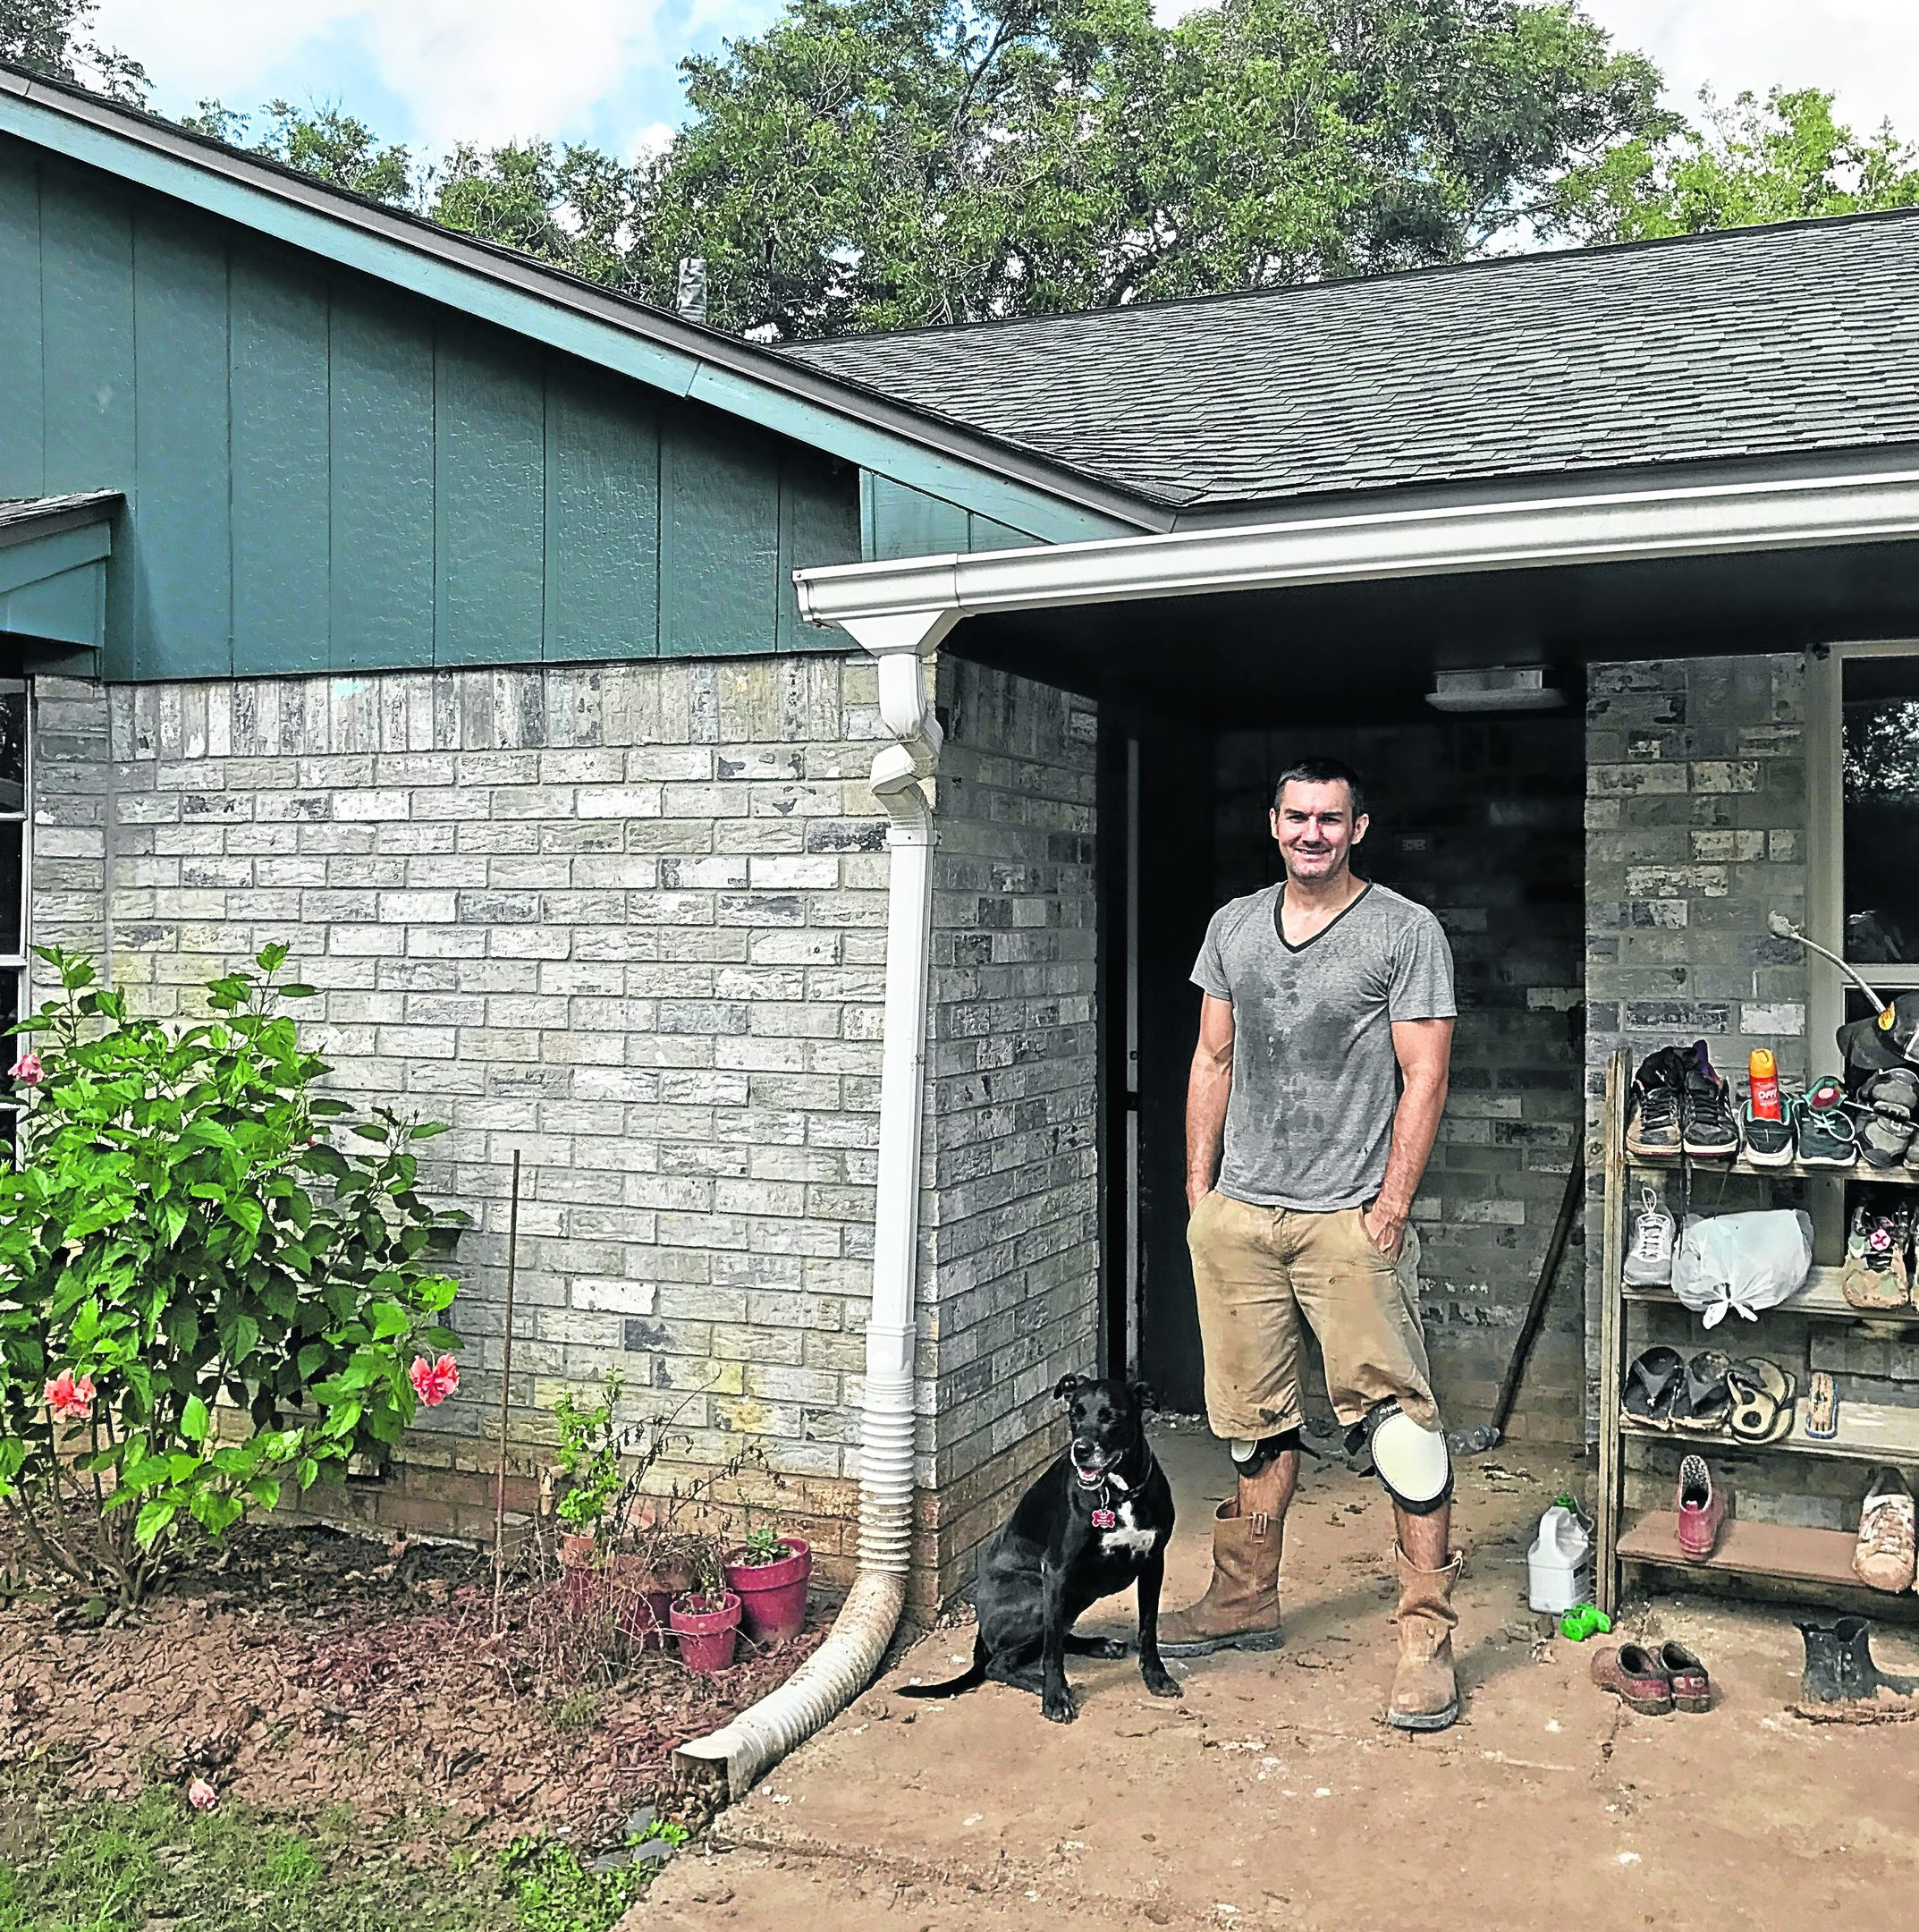 Colin Mackie after Hurricane Harvey wreaked havock on his home in Houston, USA.